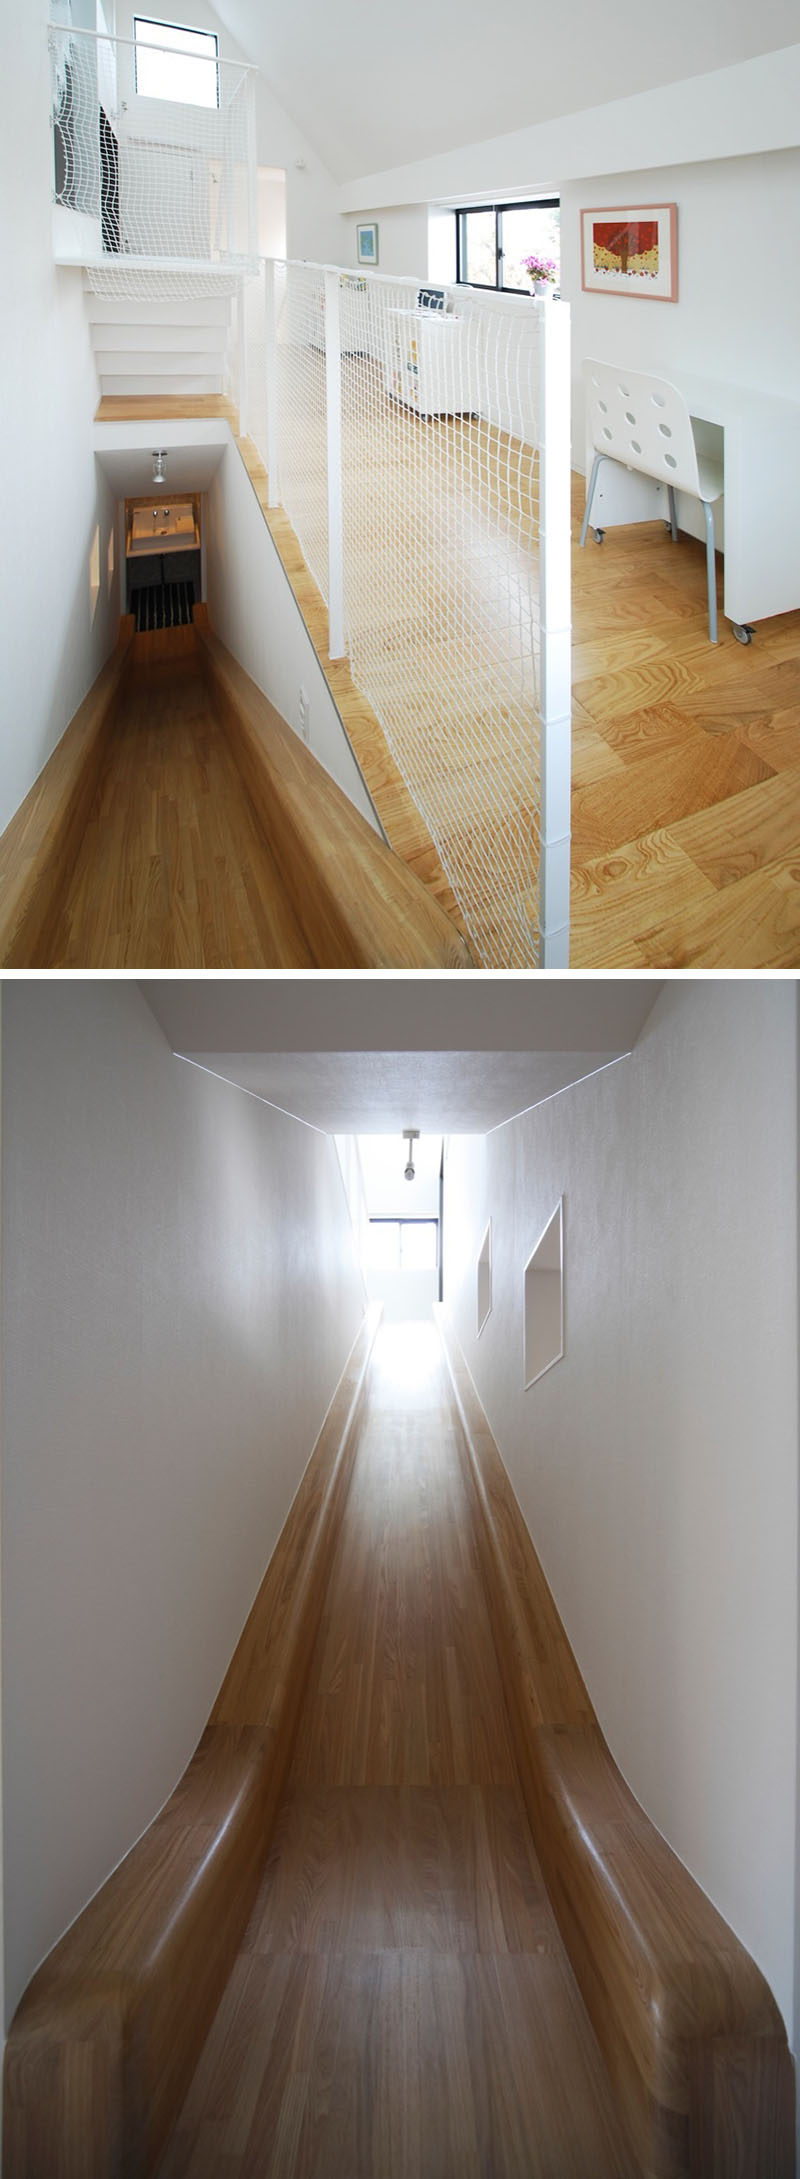 This Wooden Slide Surrounded By White Walls Connects A Work Area And A  Bathroom.